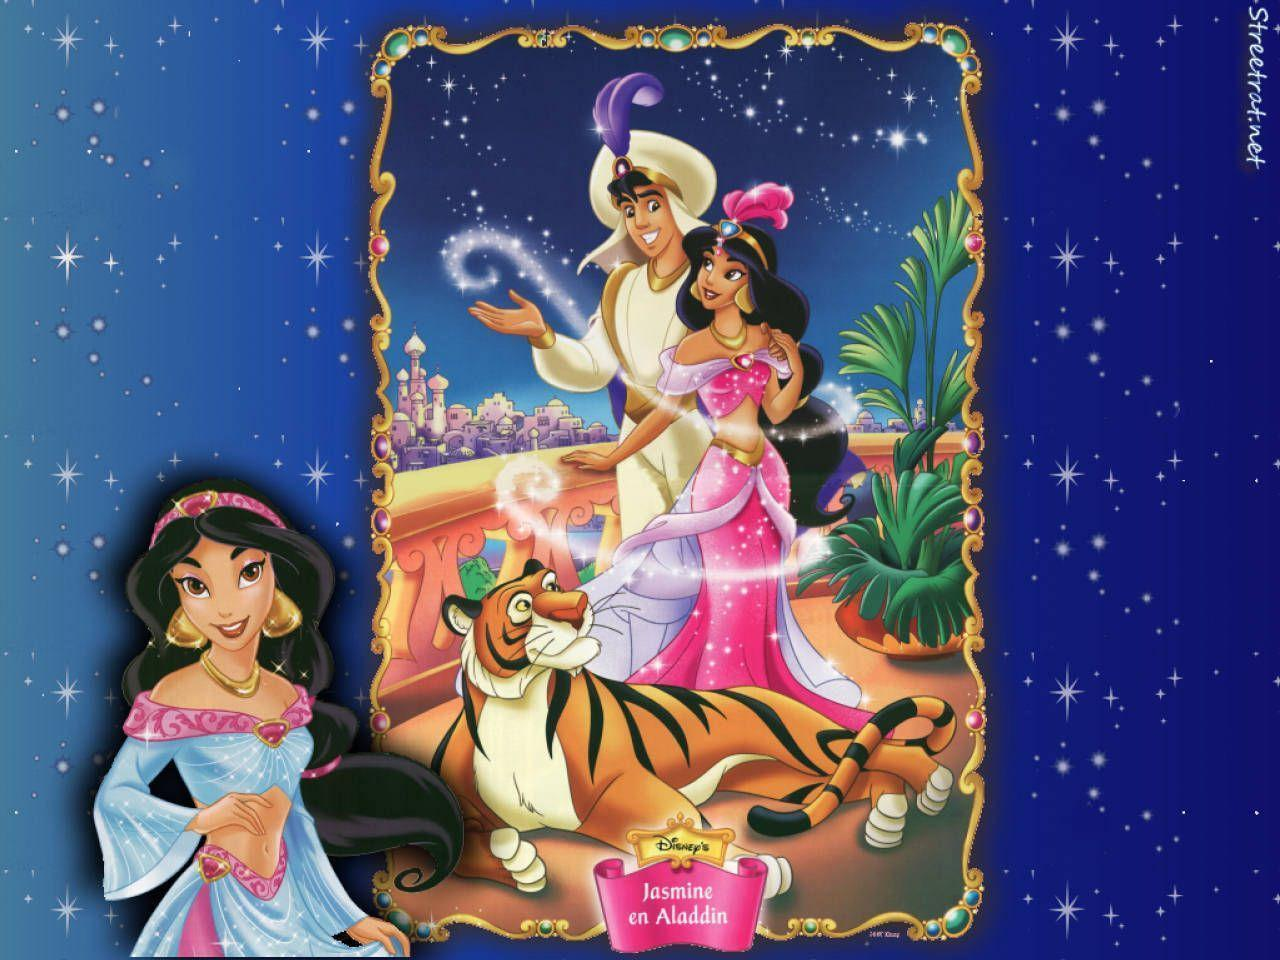 Aladdin and Jasmine Disney Couples Cartoon HD Wallpaper for ...